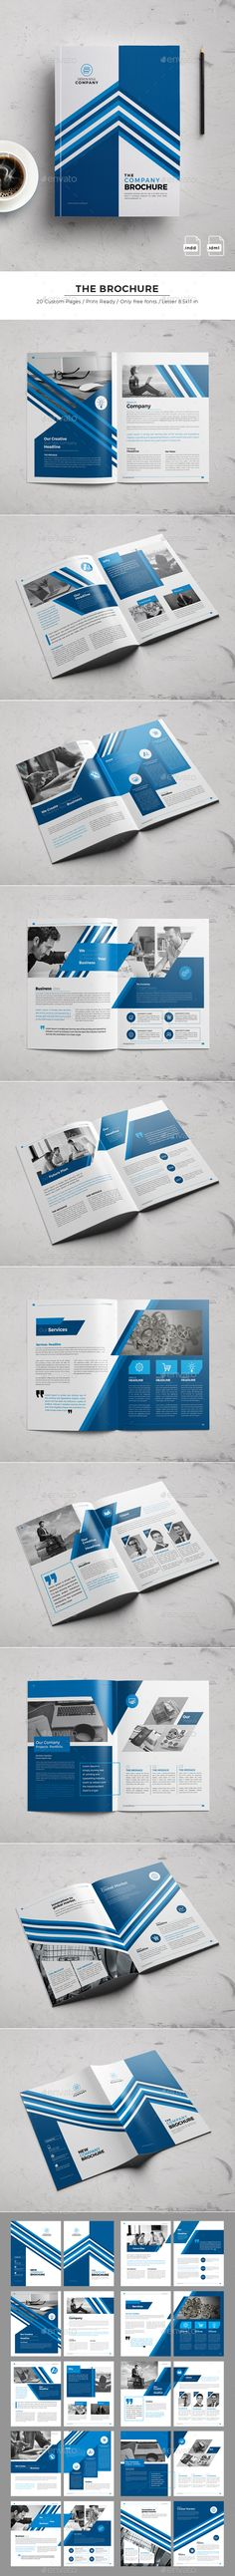 The Brochure — InDesign INDD #catalog #company • Download ➝ https://graphicriver.net/item/the-brochure/19249645?ref=pxcr